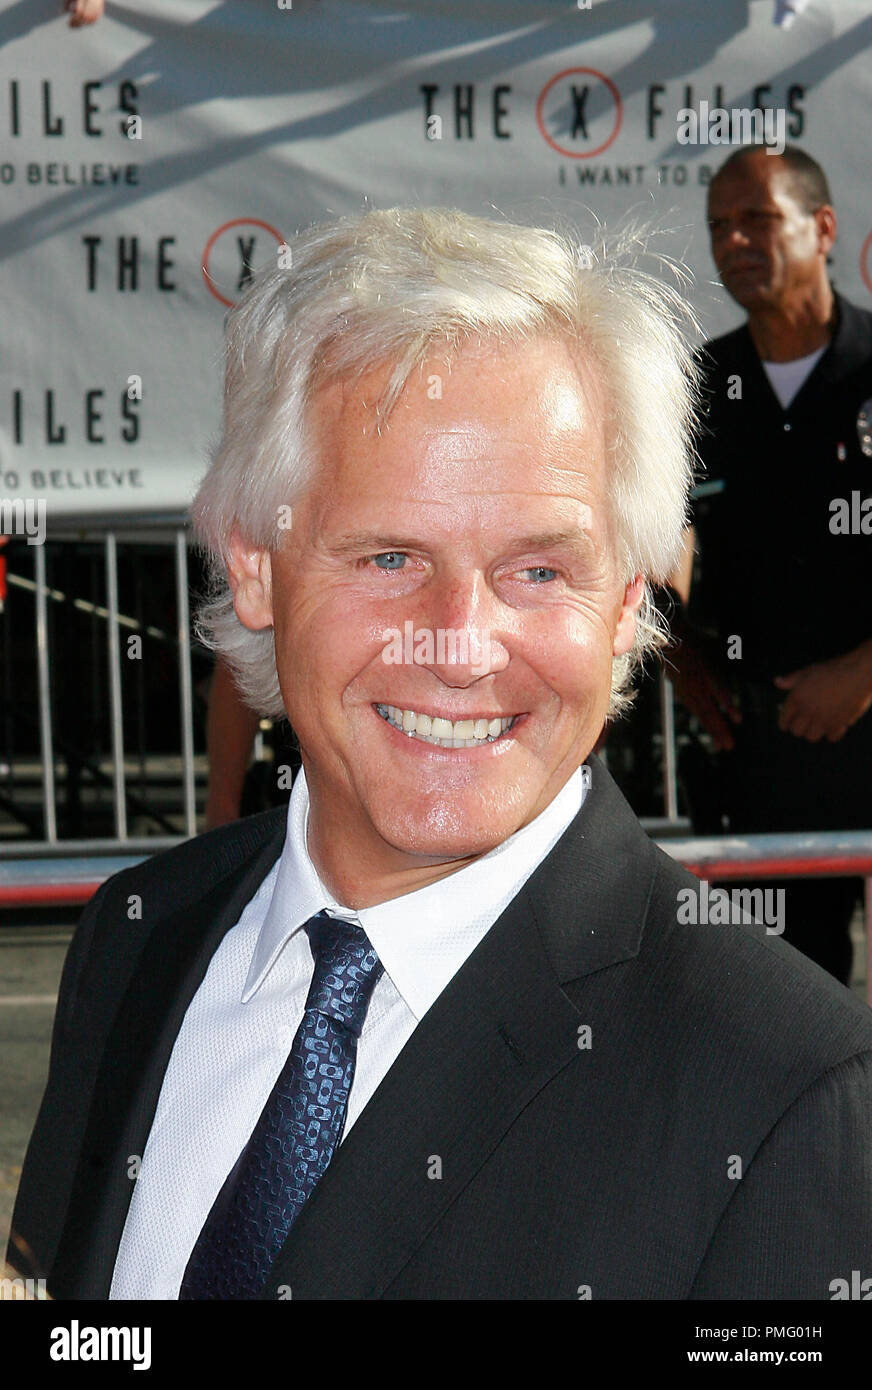 The X-Files: I Want to Believe Premiere Director Chris Carter  7-23-2008 / Mann's Grauman Chinese Theatre / Hollywood, CA / 20th Century Fox / Photo © Joseph Martinez / Picturelux  File Reference # 23571_0023JM   For Editorial Use Only -  All Rights Reserved - Stock Image